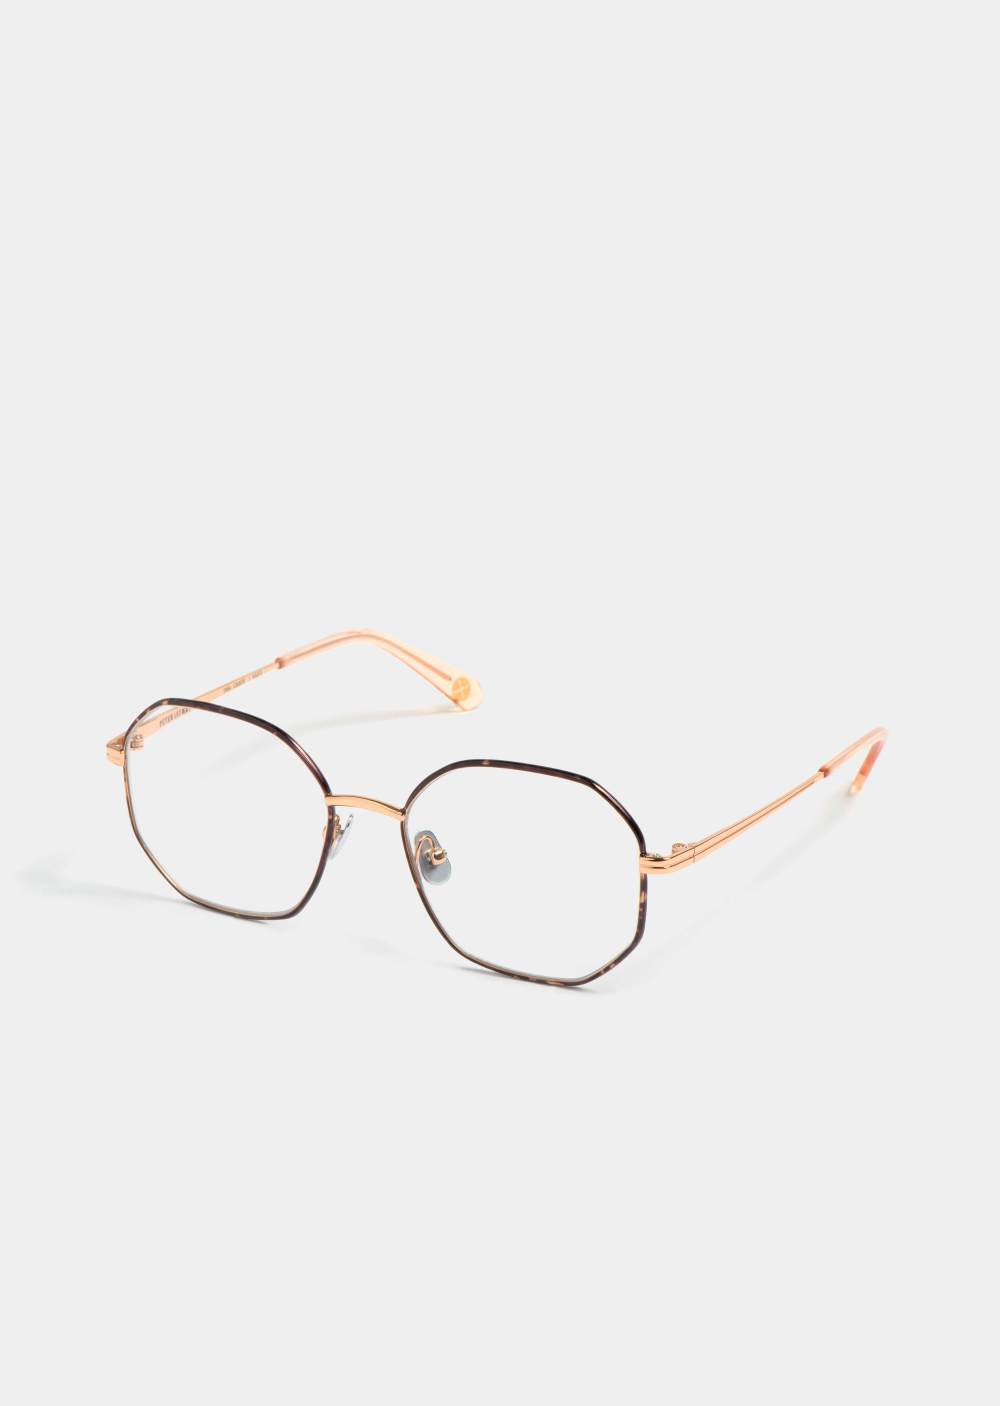 PETER AND MAY -  - S84 Celeste helmut & rose gold